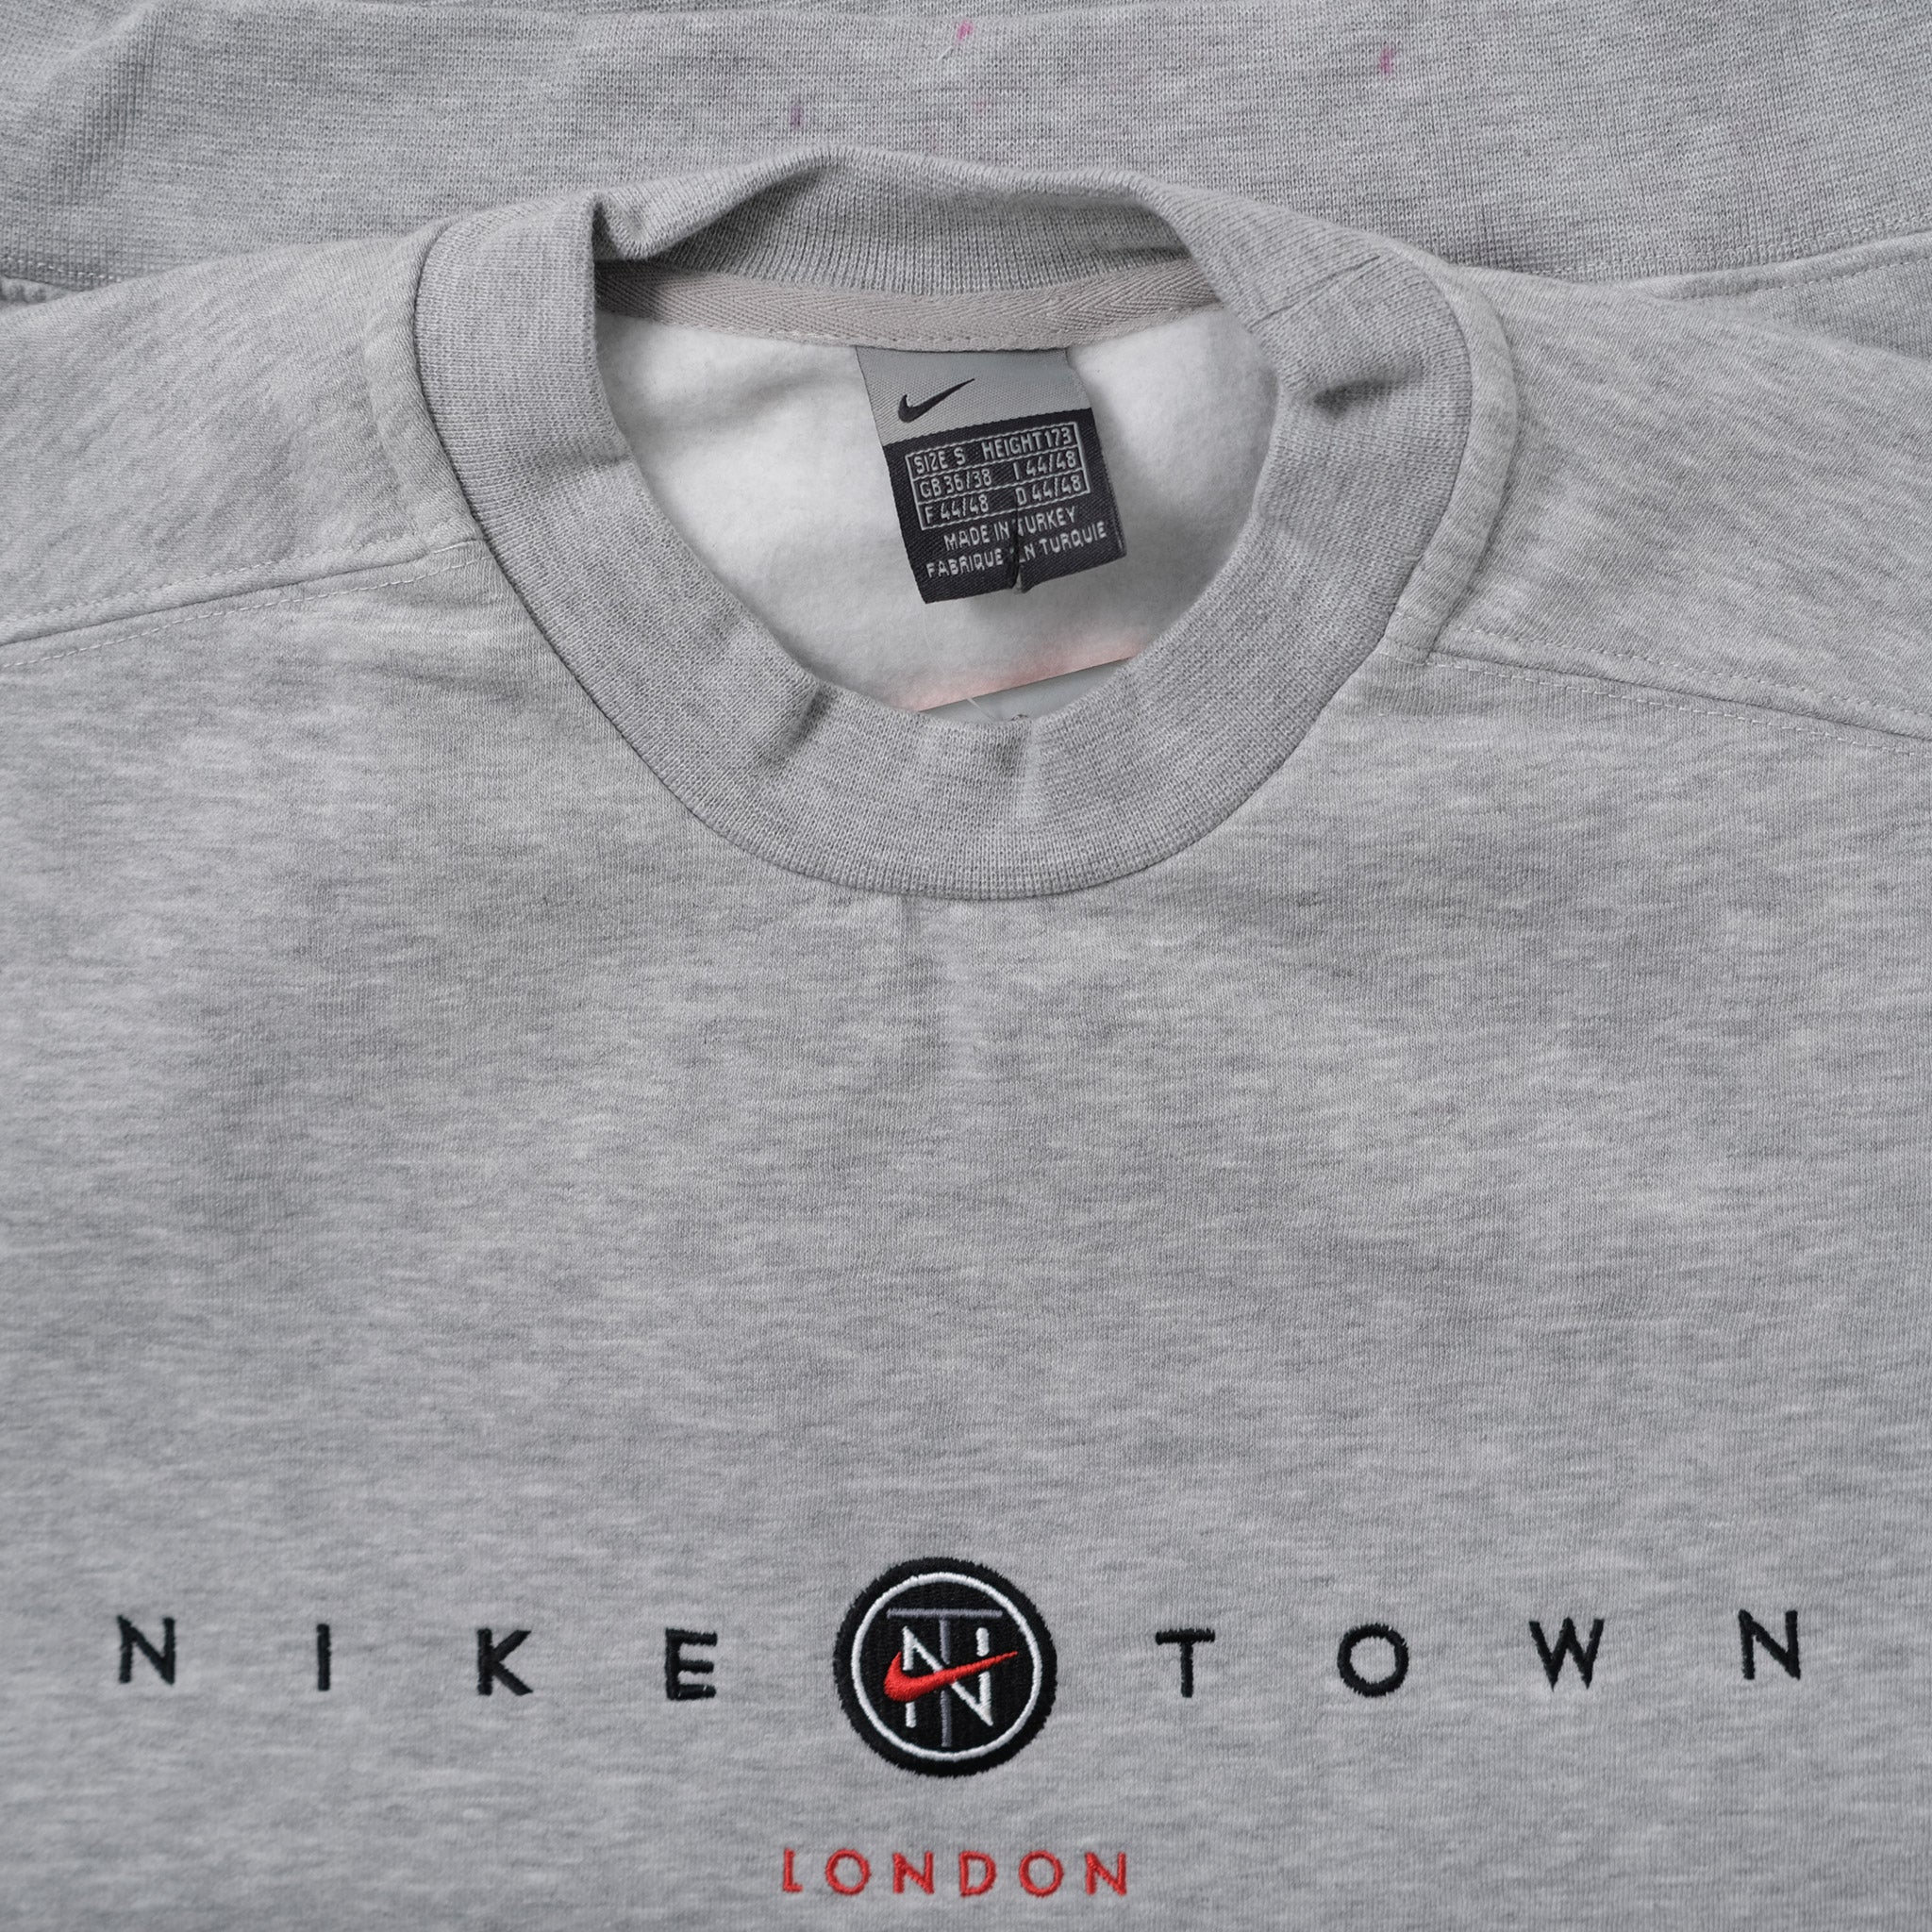 Vintage Deadstock Nike Town London Sweater Small